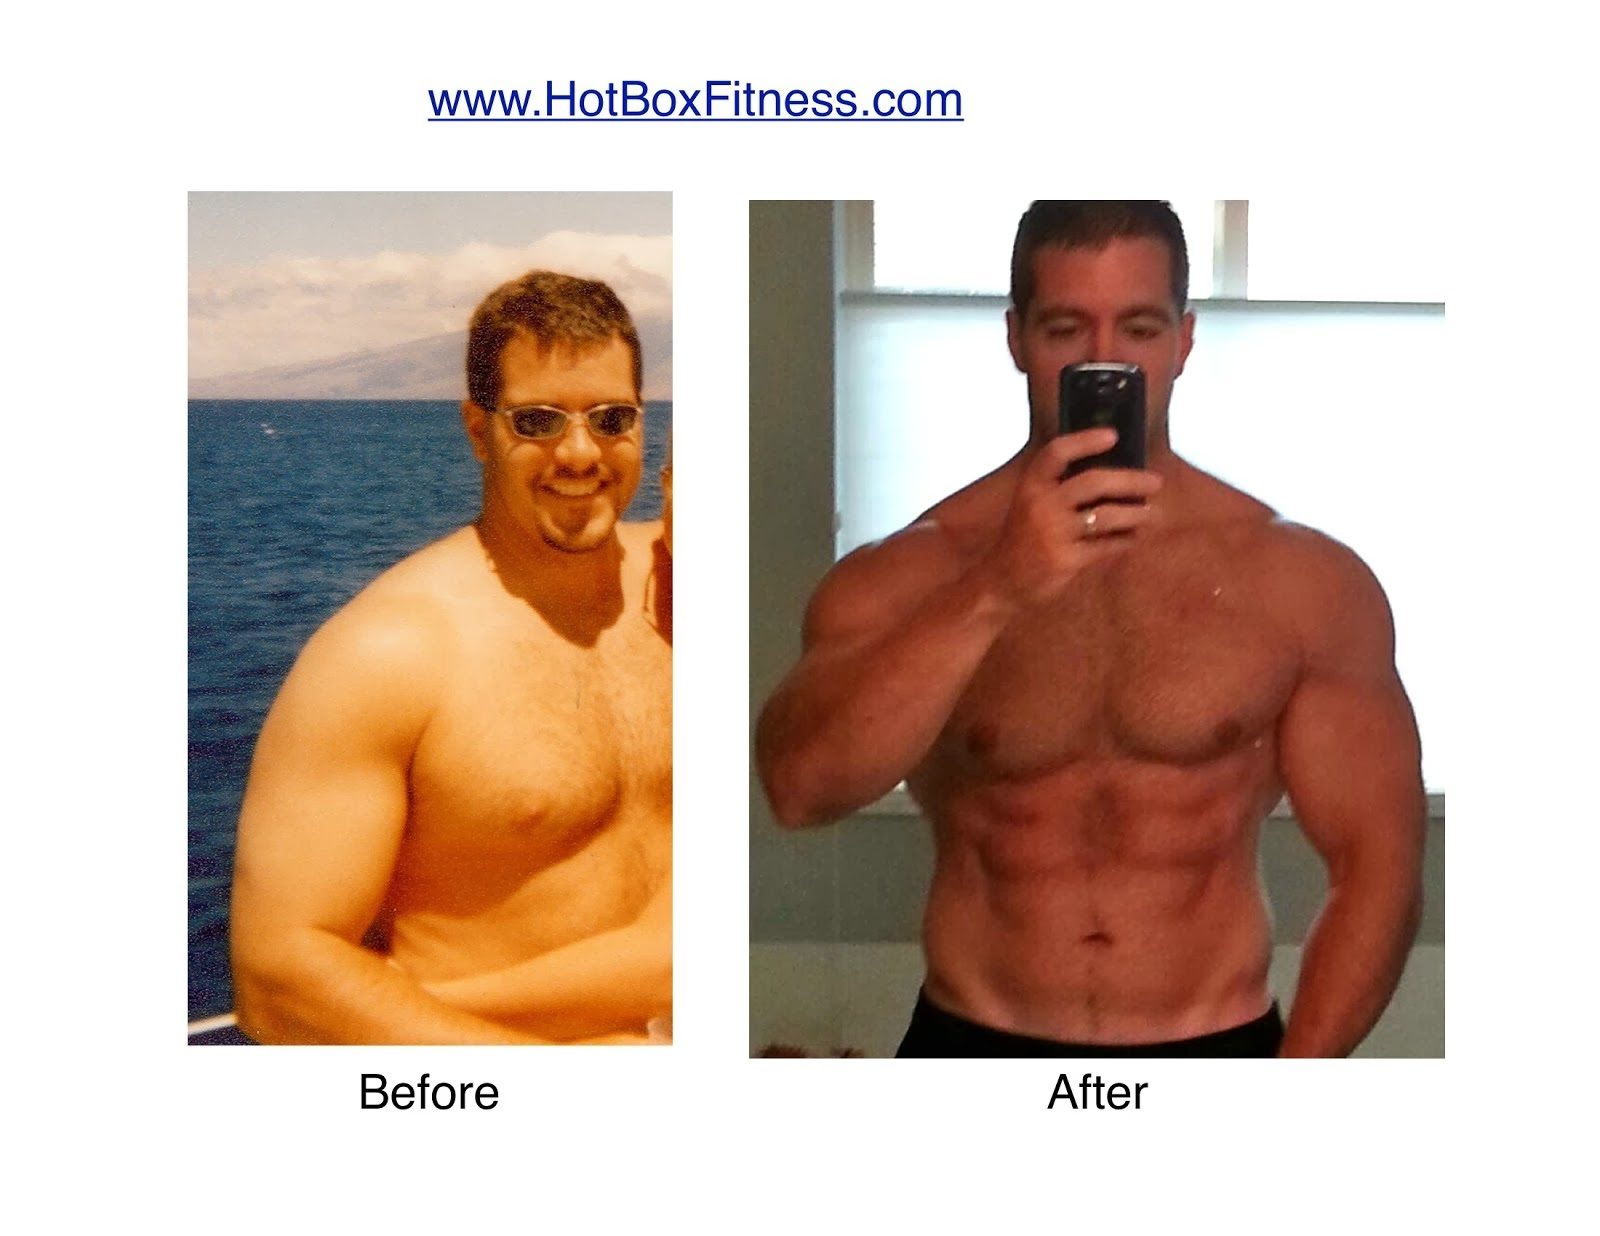 Before & After Hot Box Fitness